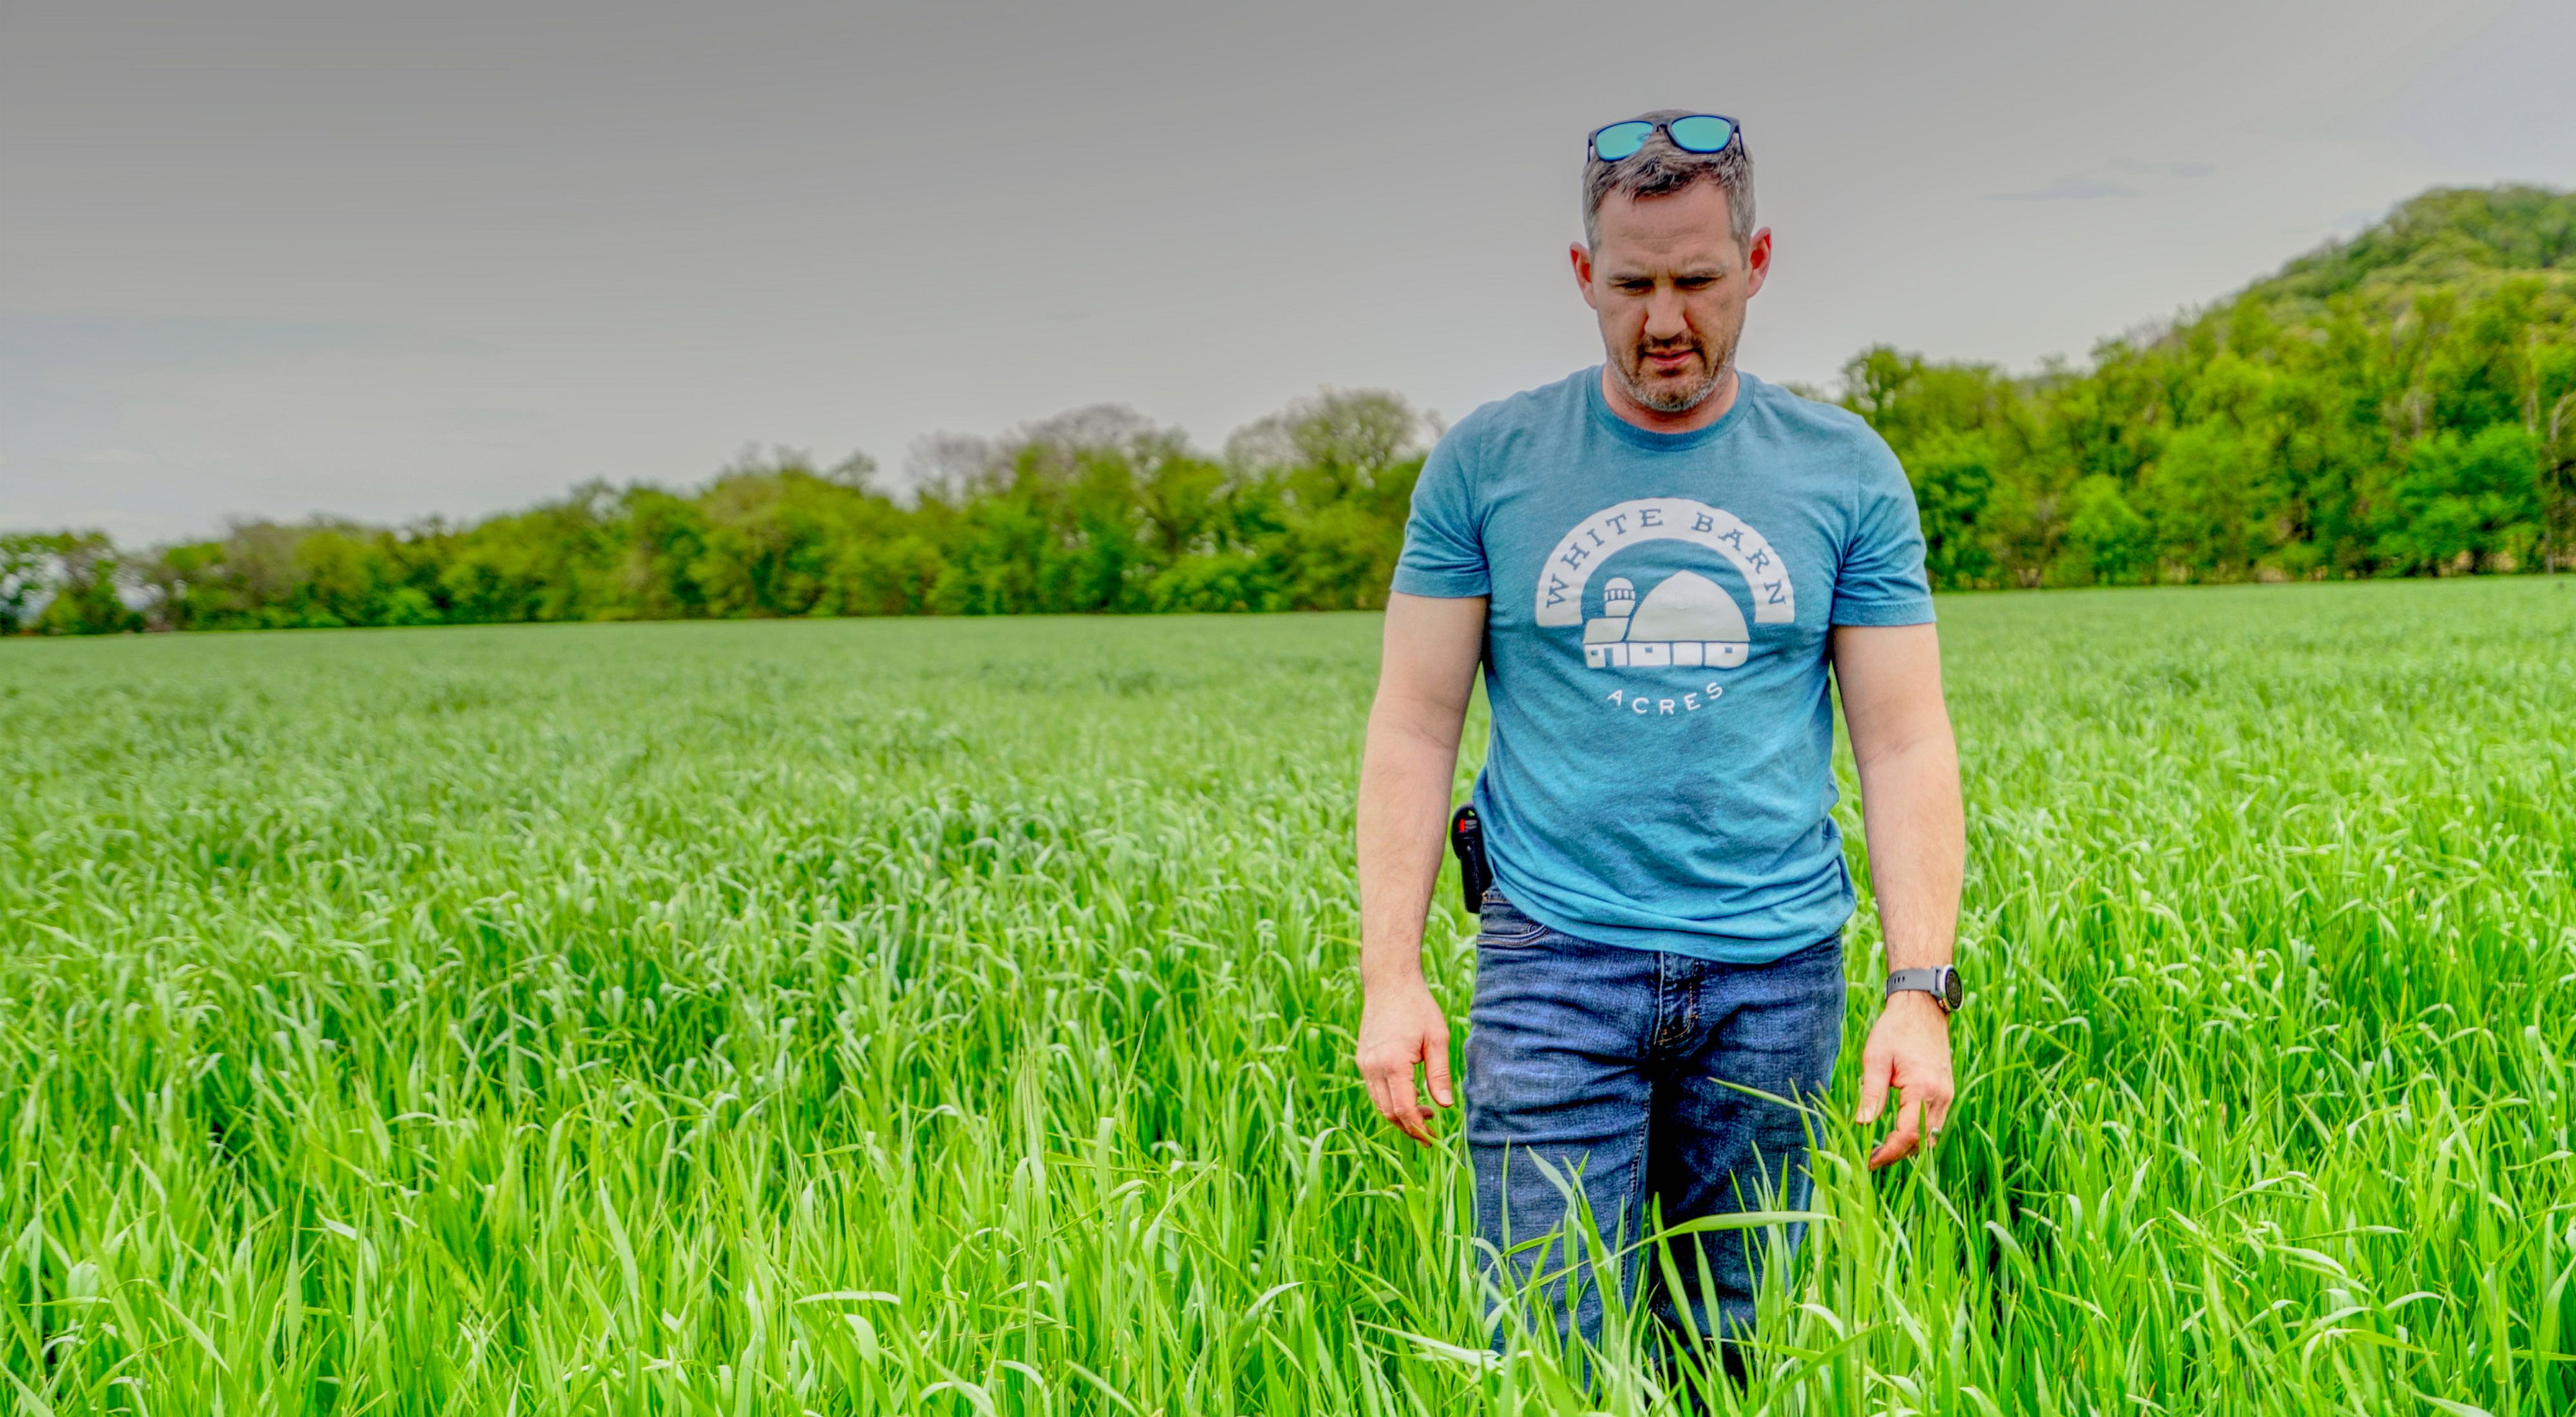 Matt Tentis standing in a field of cover crops wearing a t-shirt that reads White Barn Acres.